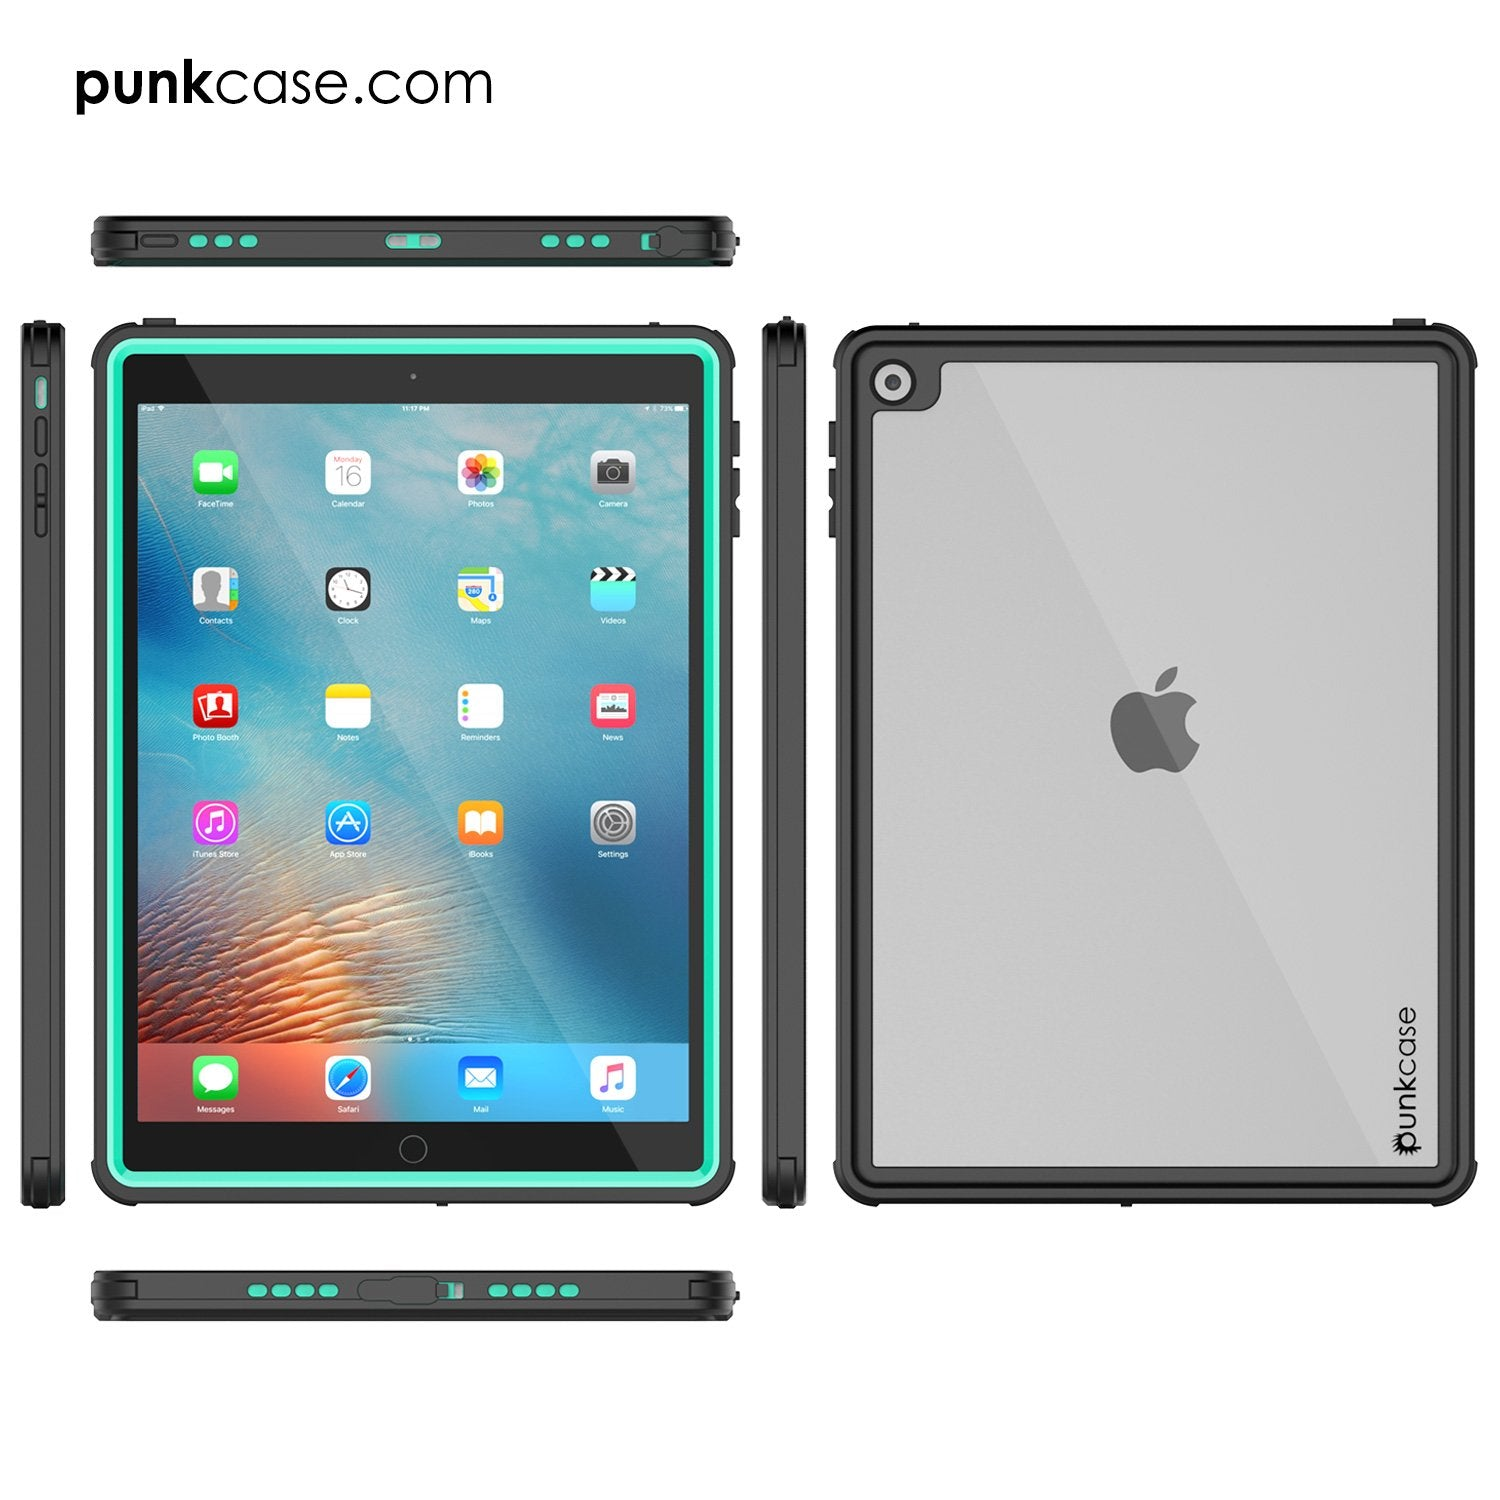 Punkcase iPad Pro 9.7 Case [CRYSTAL Series], Waterproof, Ultra-Thin Cover [Shockproof] [Dustproof] with Built-in Screen Protector [Teal] - PunkCase NZ